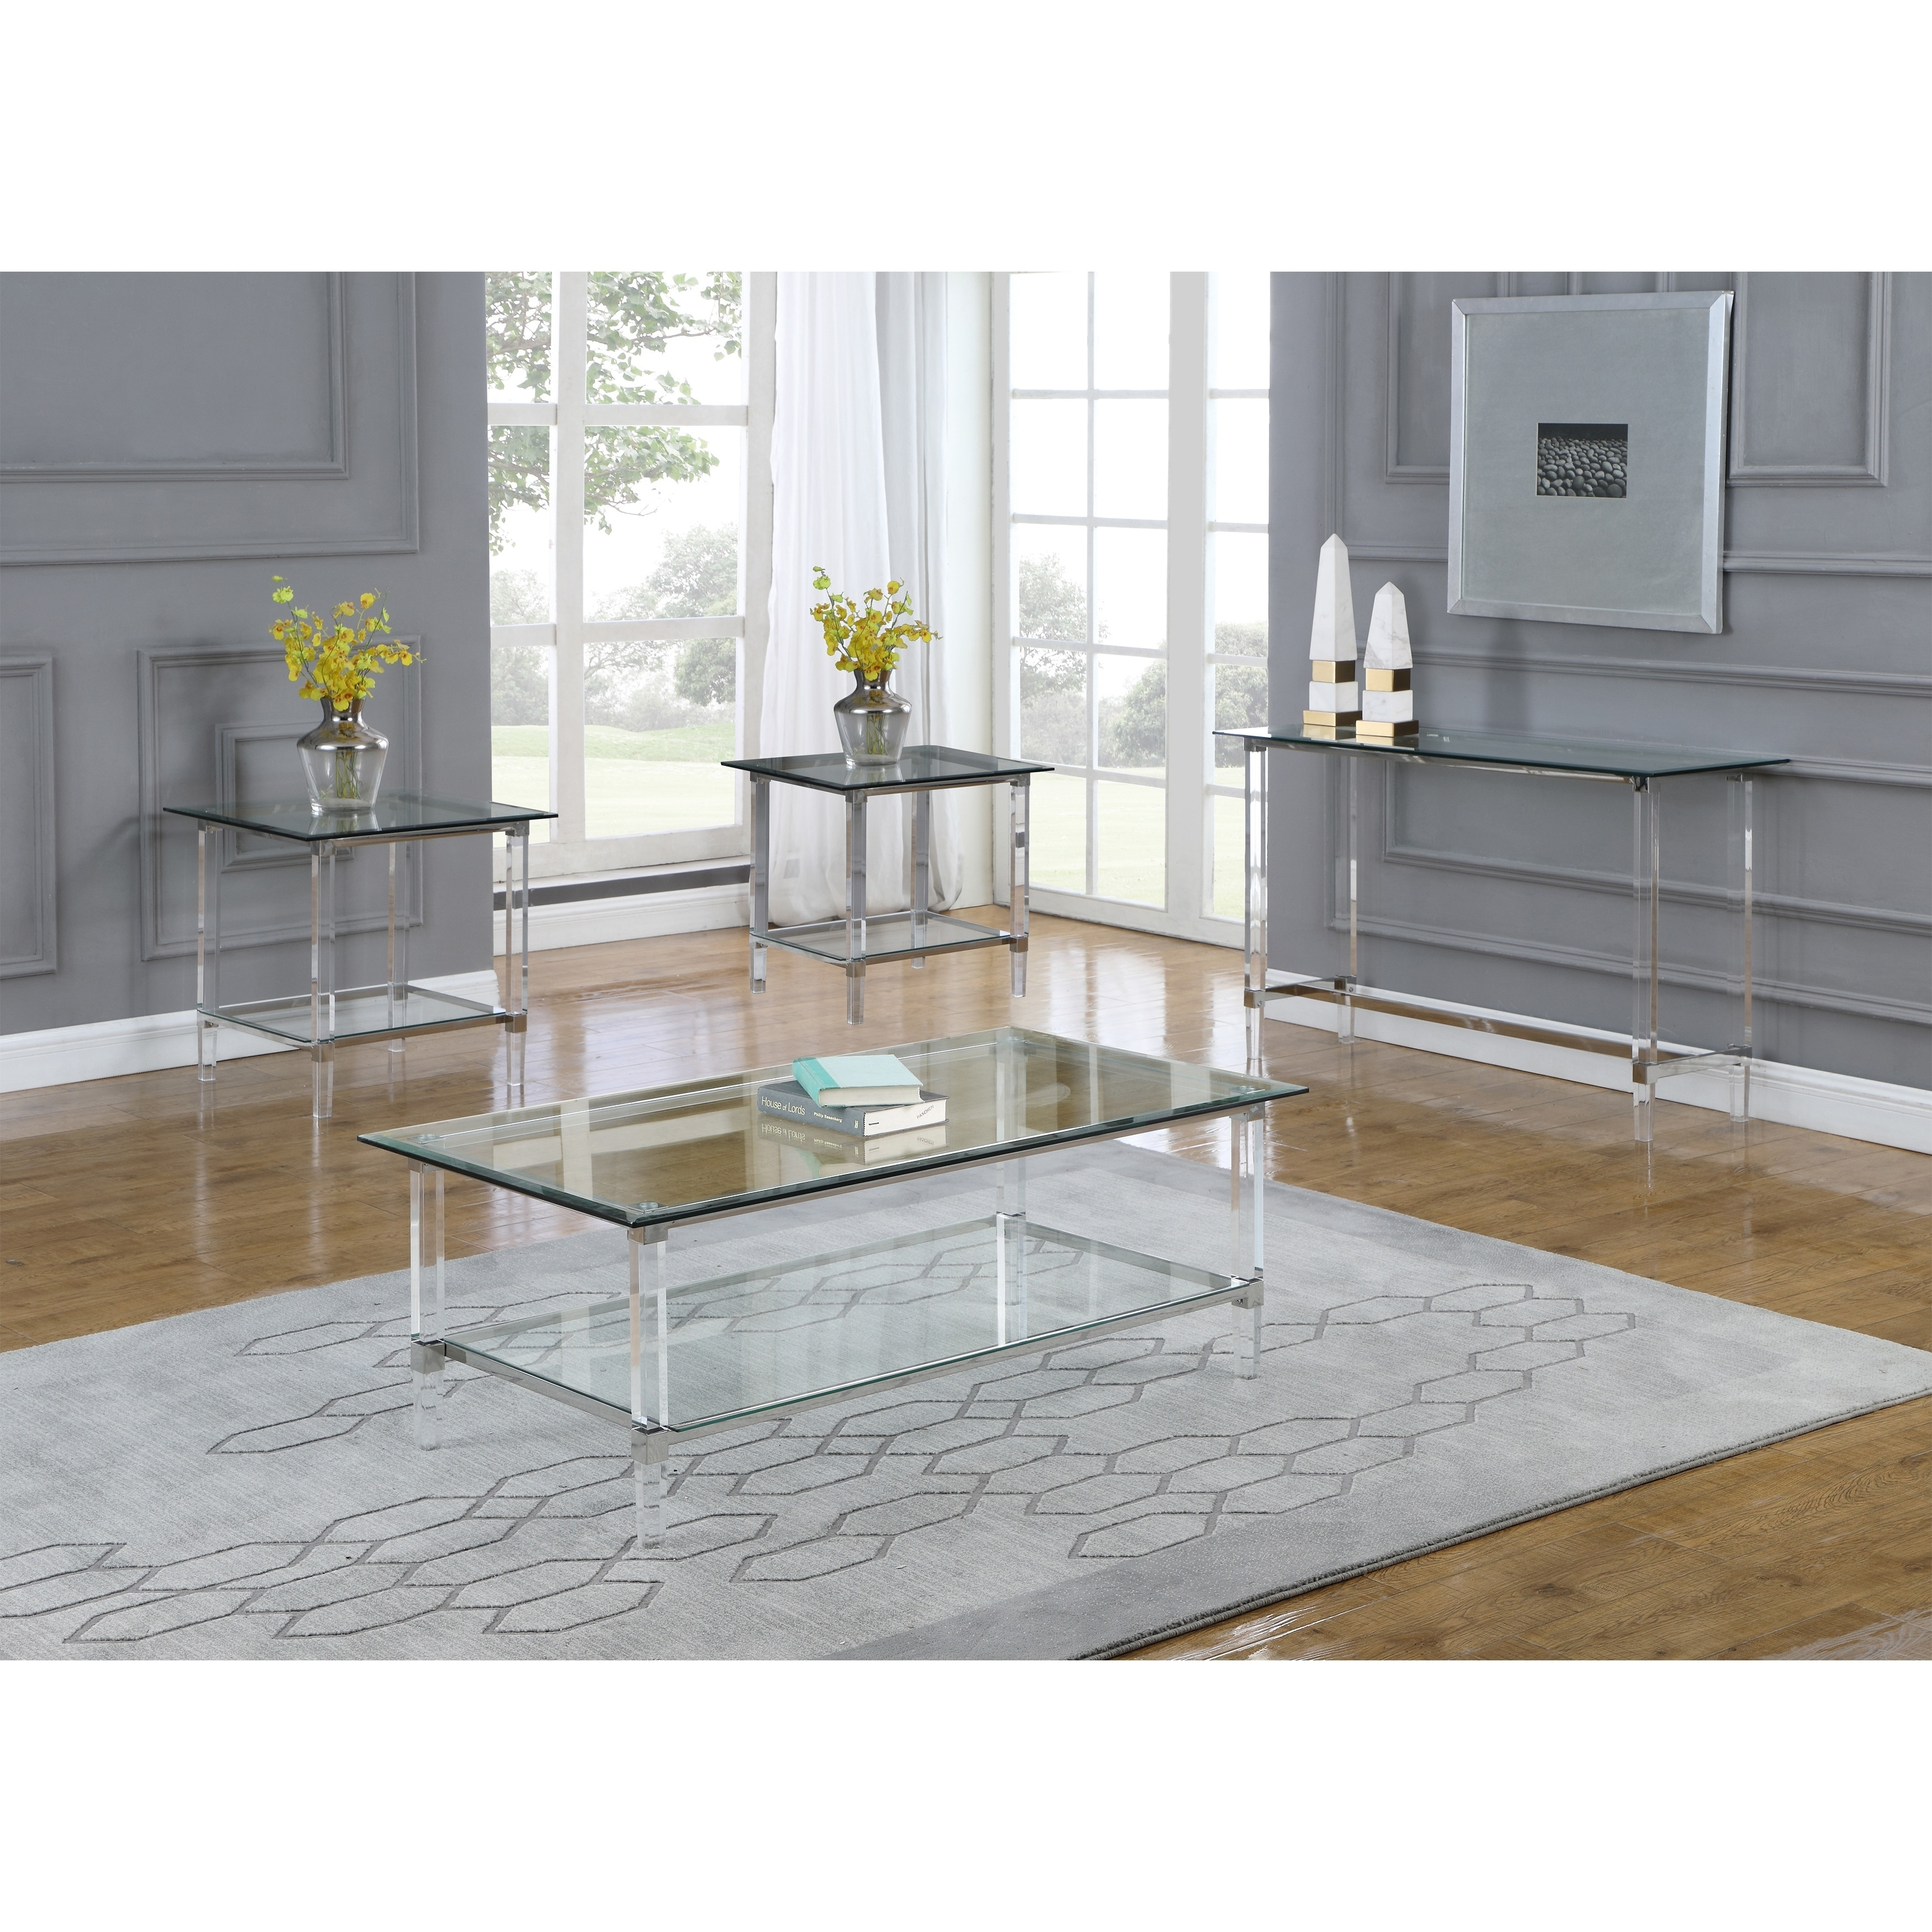 Best Quality Furniture 4 Piece Coffee Table Set With Rectangle Clear Glass Top And Acrylic Legs Overstock 30501905